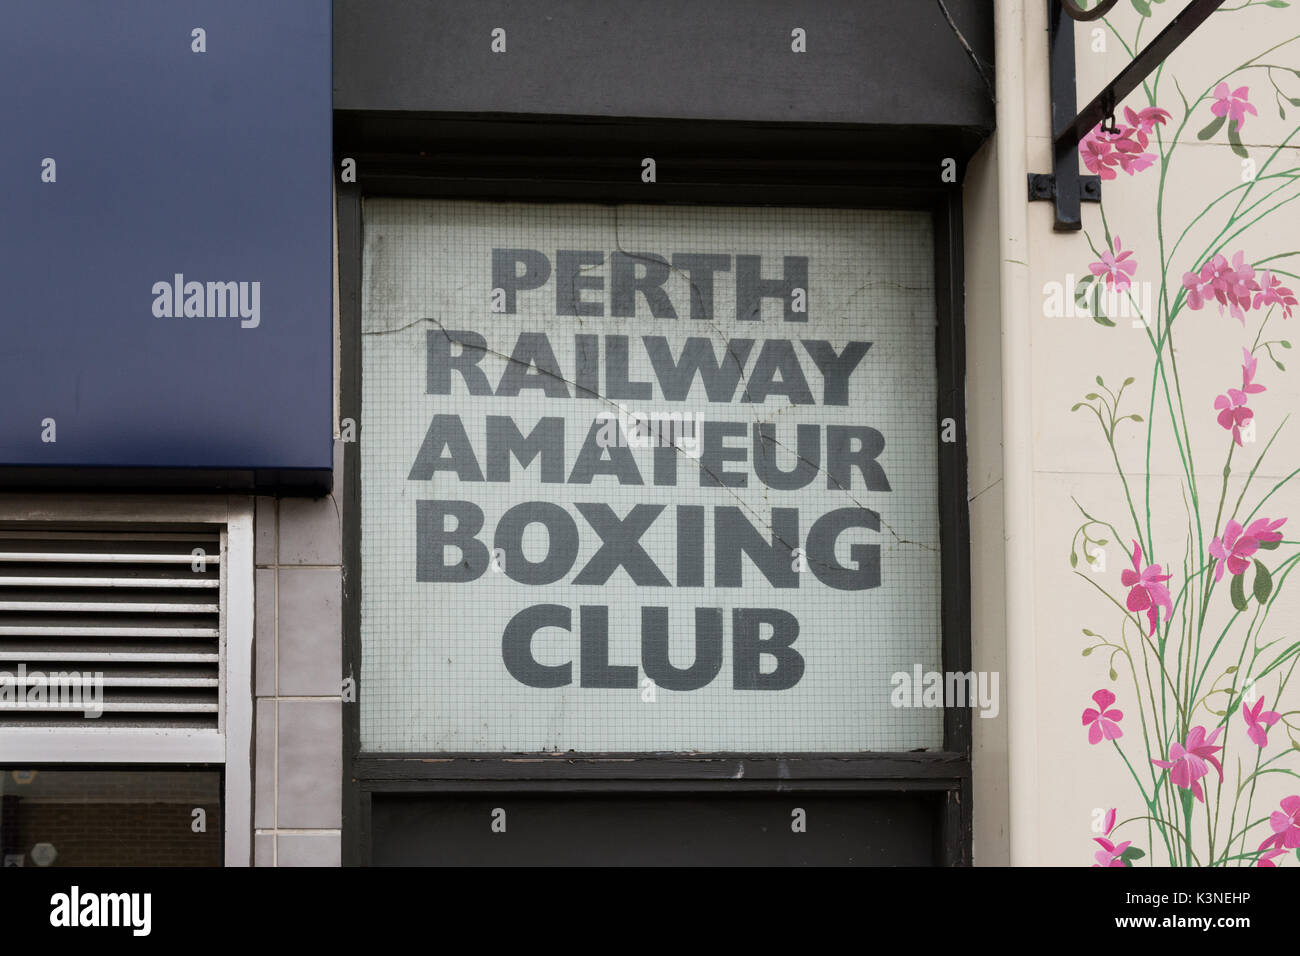 Perth Railway Amateur Boxing Club sign, South Methven Street, Perth, Scotland, UK - Stock Image